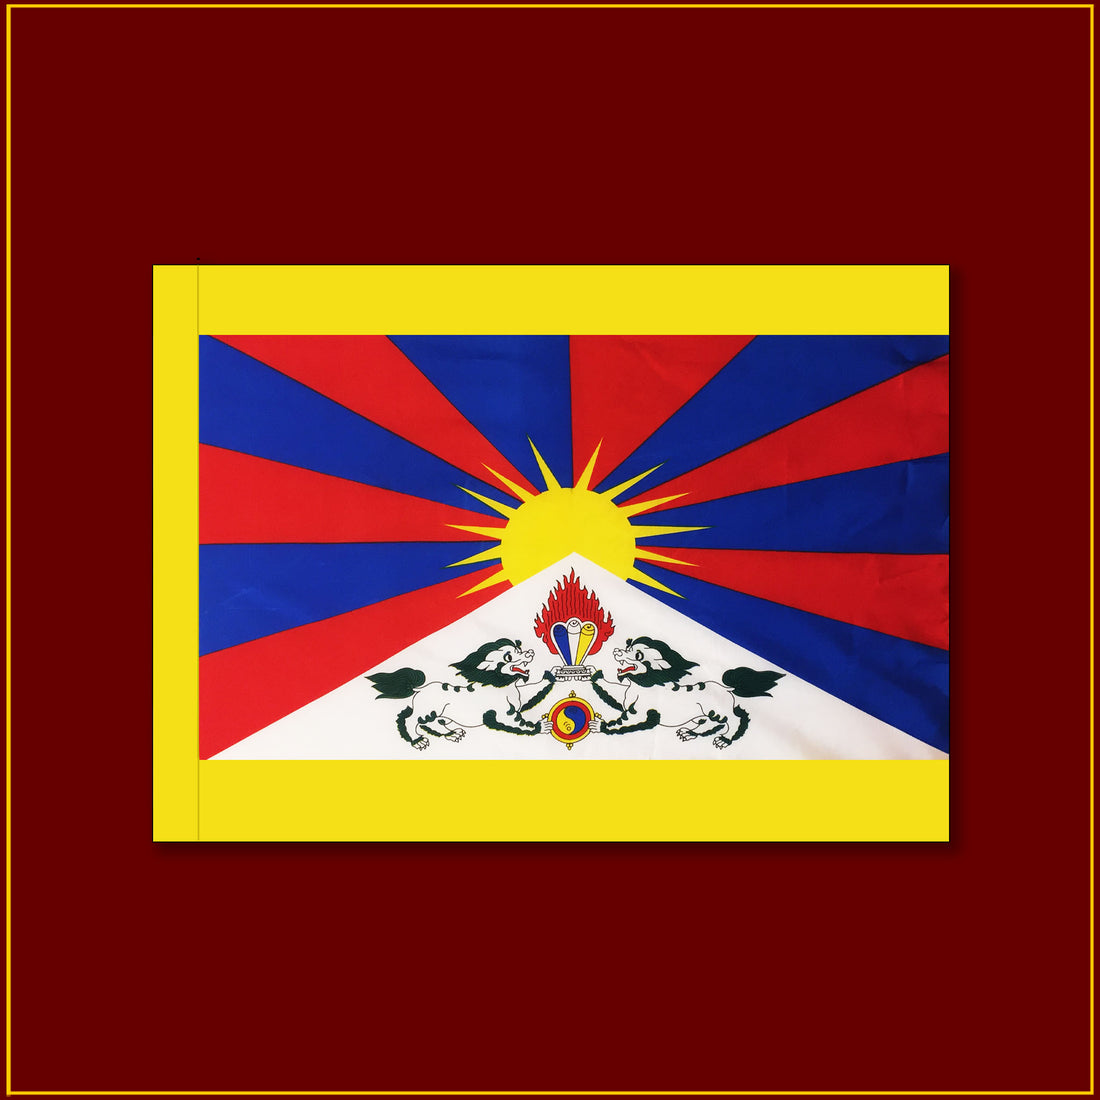 Tibetan National Flag - 27